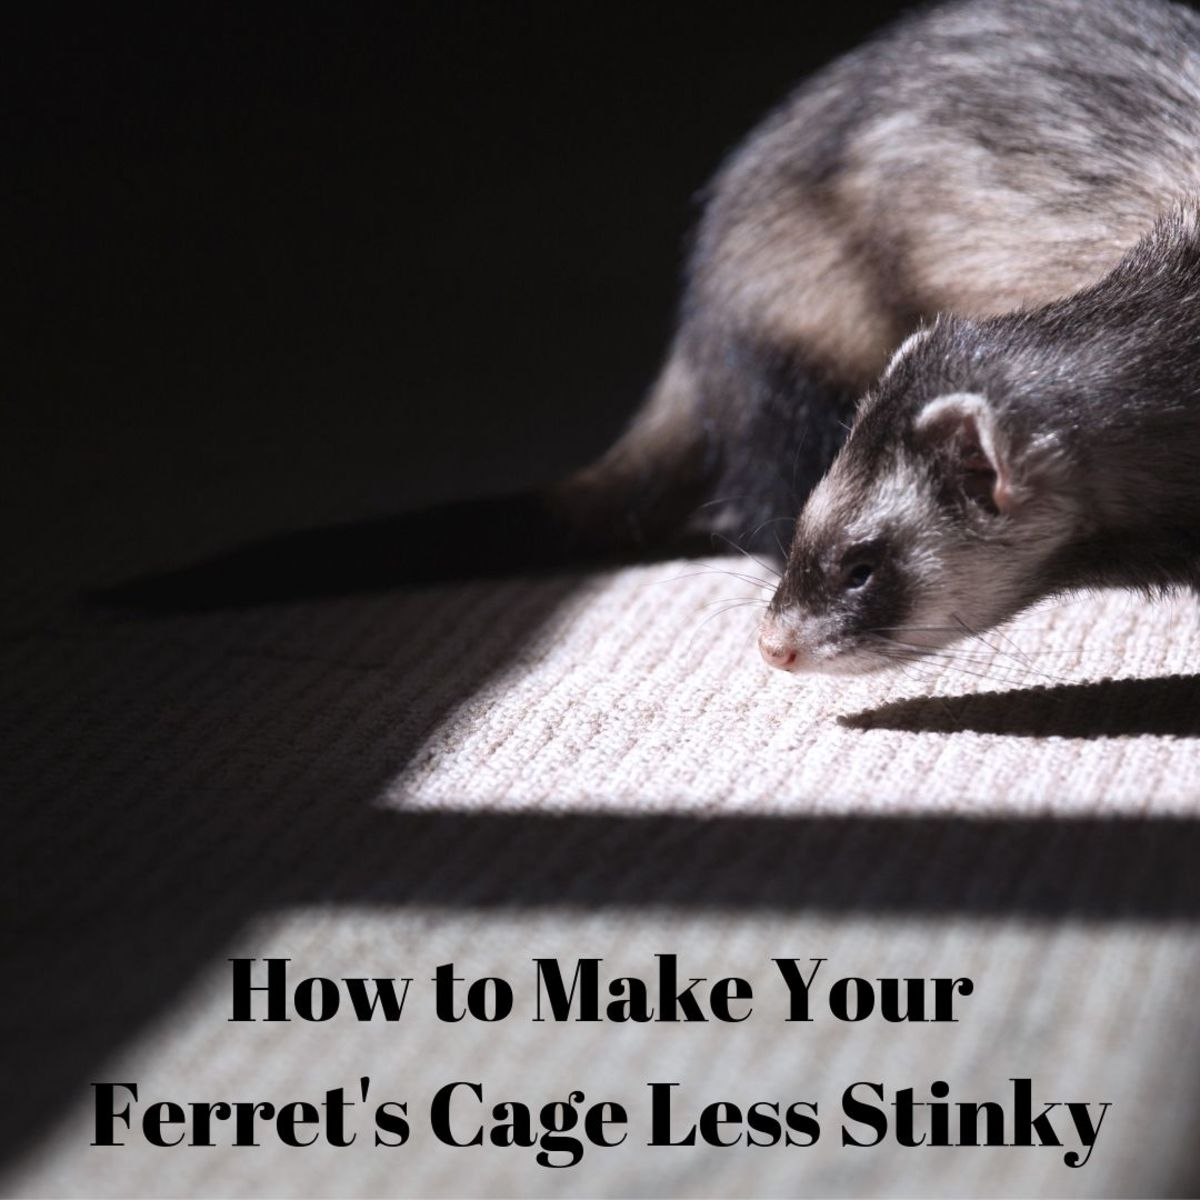 Learn five tips and tricks for minimizing the smell of your ferret's cage!